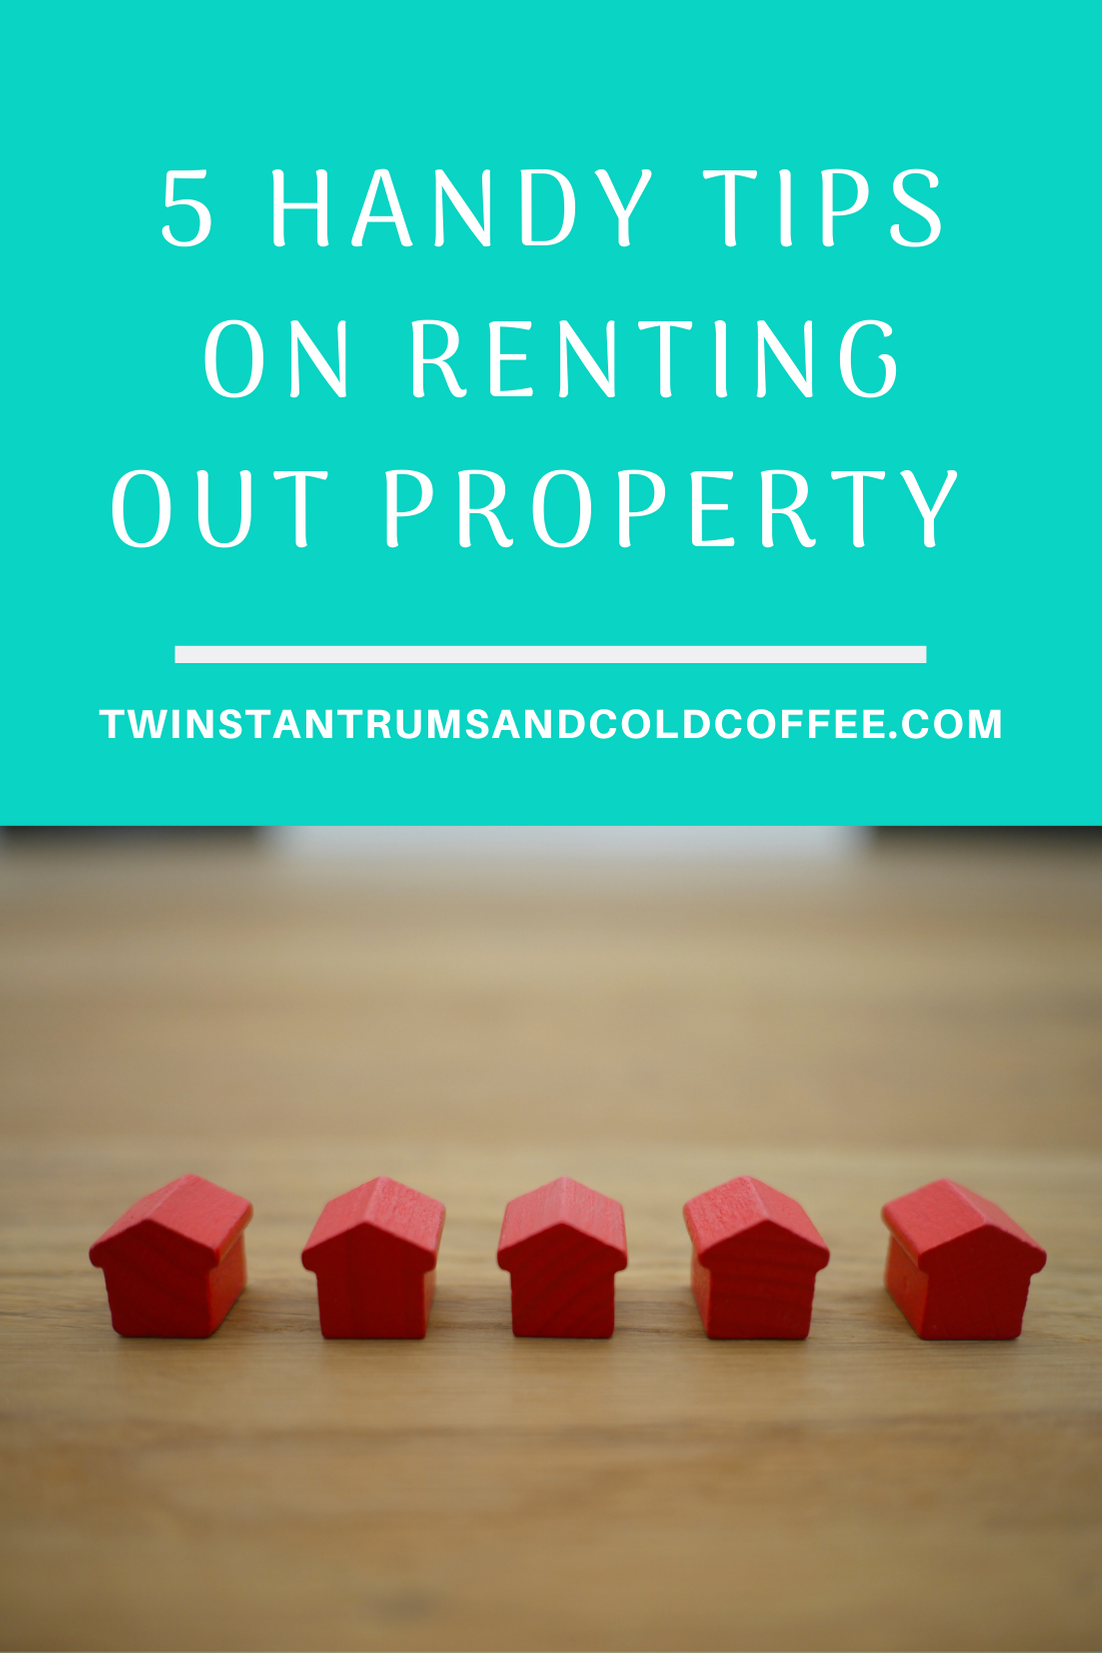 Little wooden houses for a PIN on handy tips on renting out property